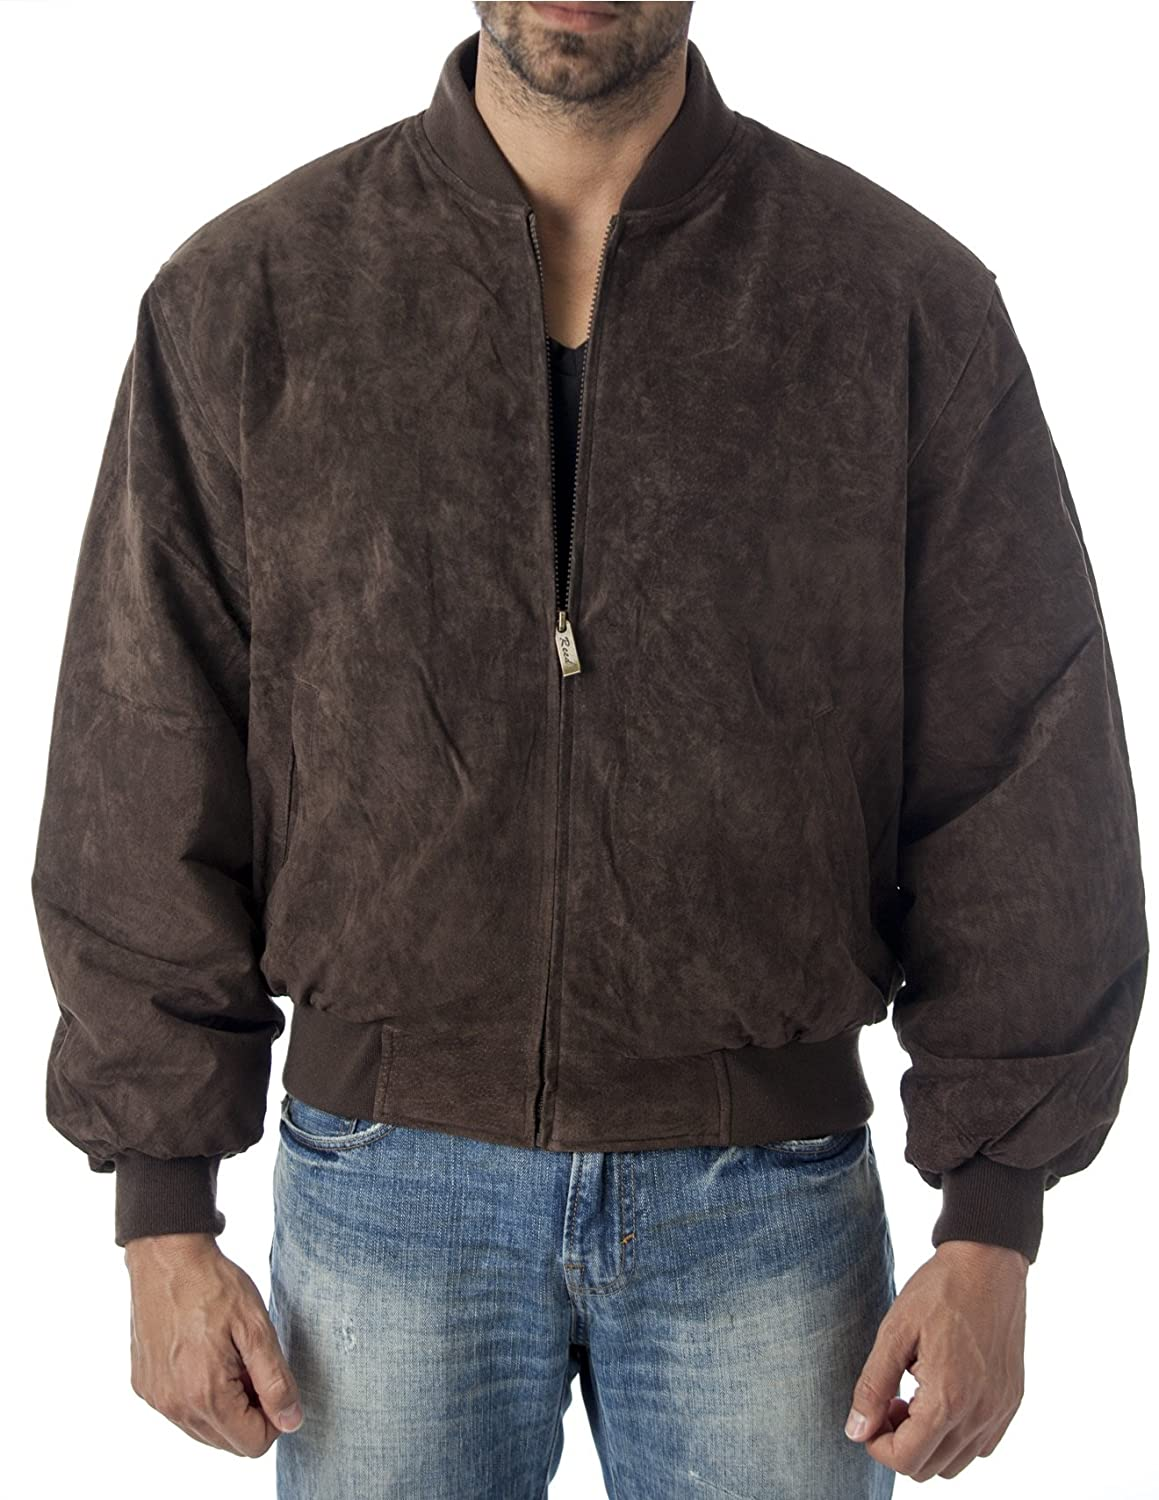 REED MEN'S BASEBALL SUEDE LEATHER JACKET (IMPORTED) 1000